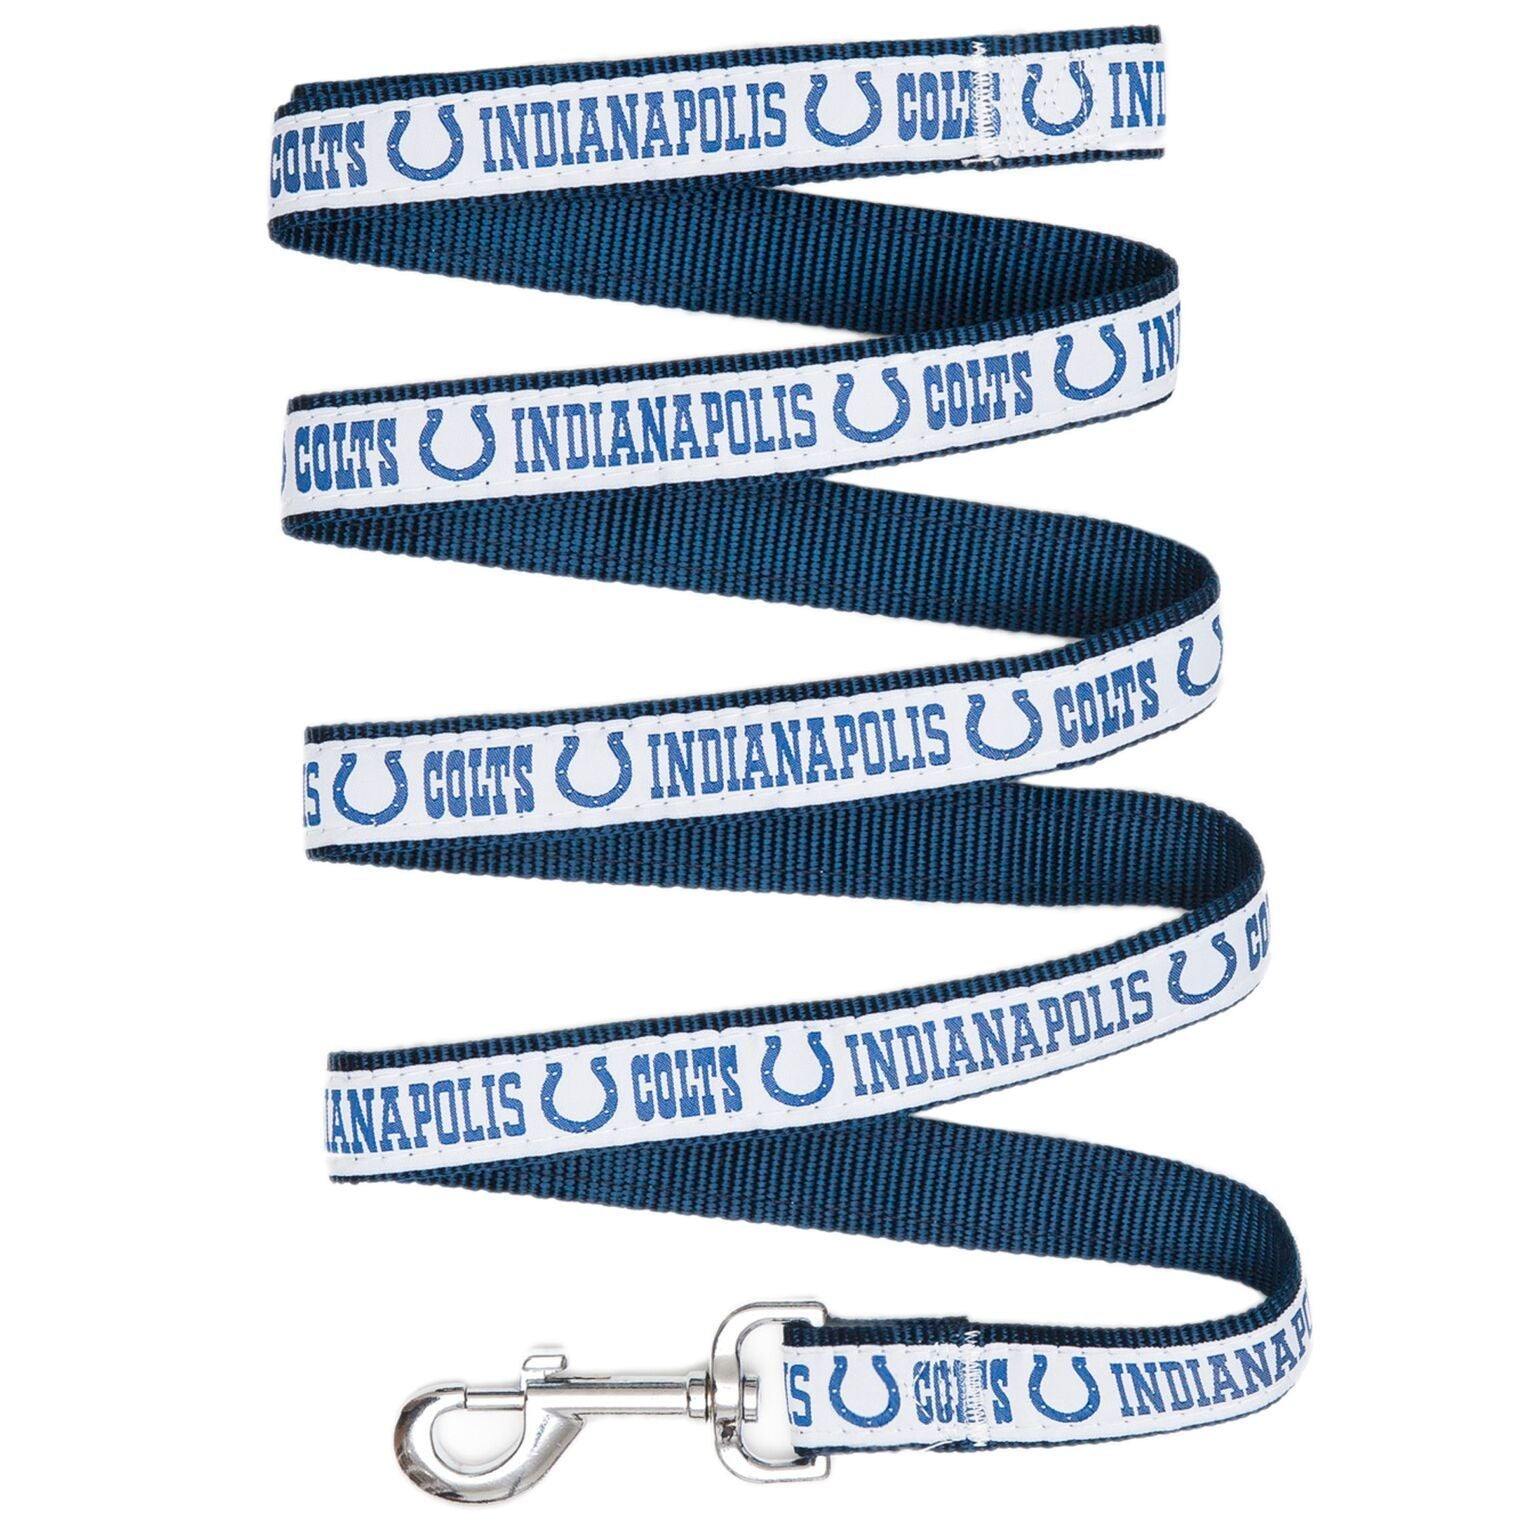 Indianapolis Colts Football Jersey Cheerleading Uniform Collar Leash